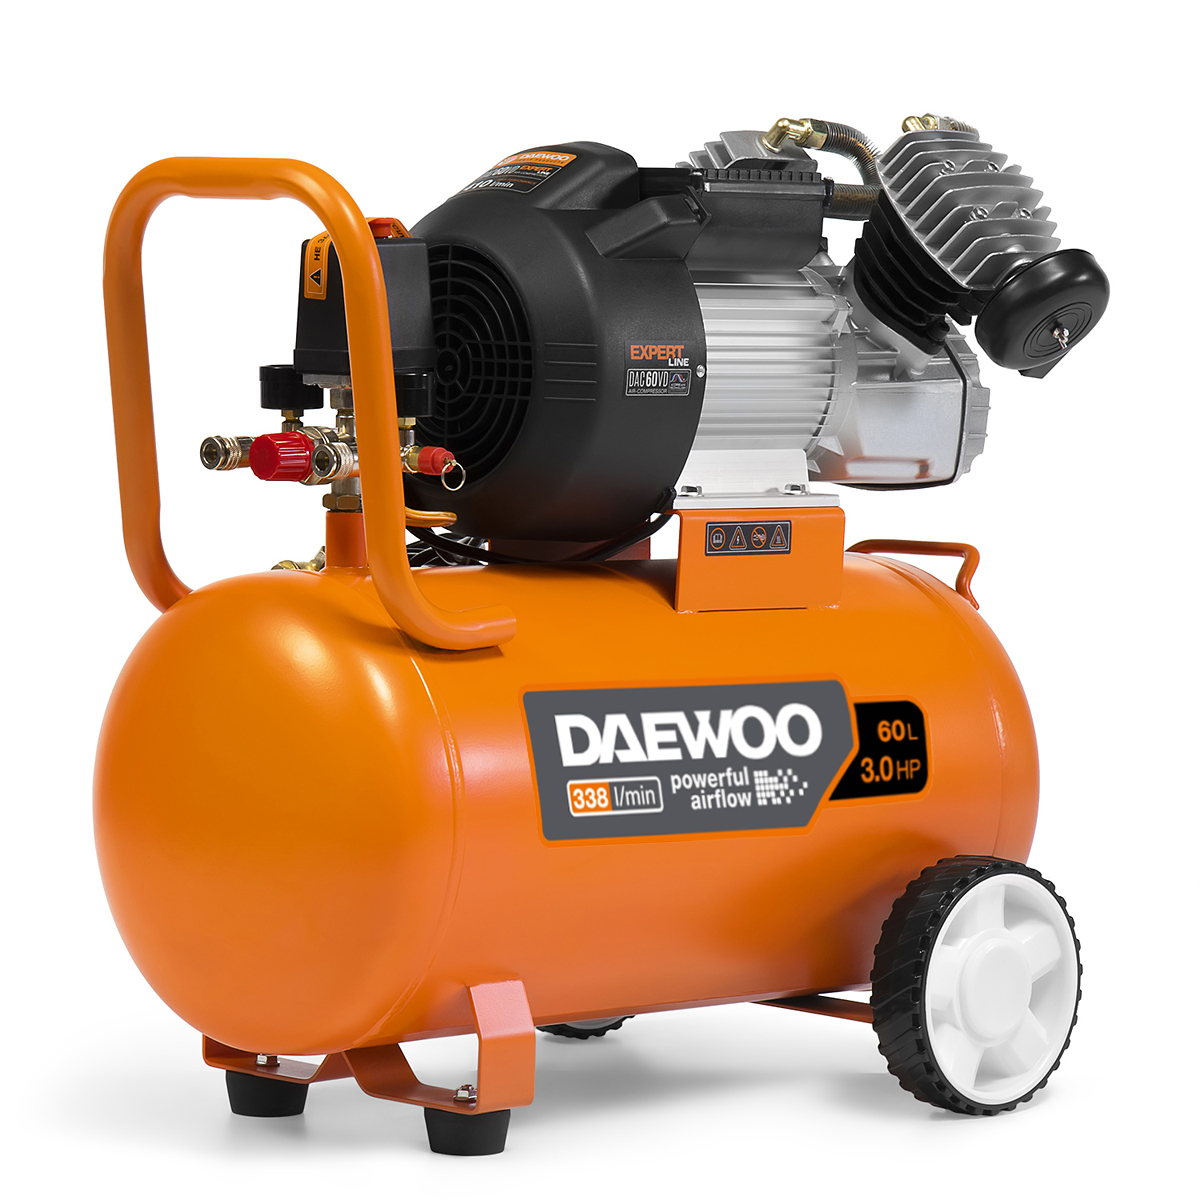 Air Compressor Daewoo DAC 60VD